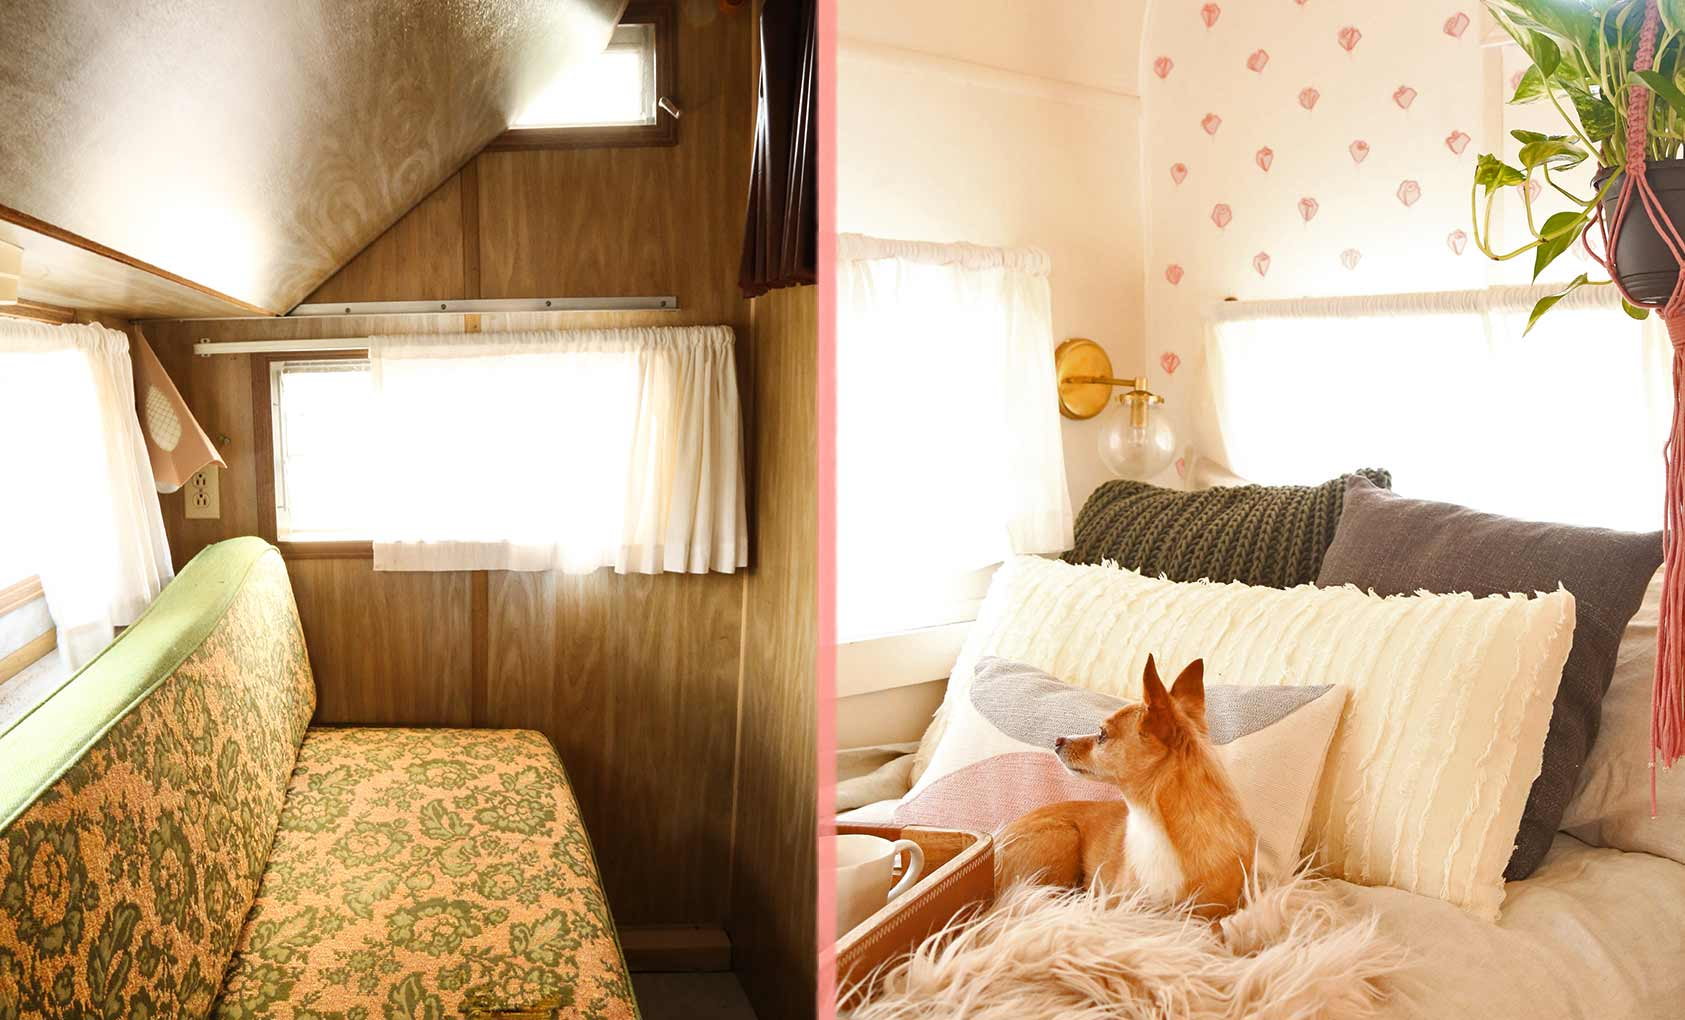 Before & After: A Vintage Camper's Revamp, Design*Sponge